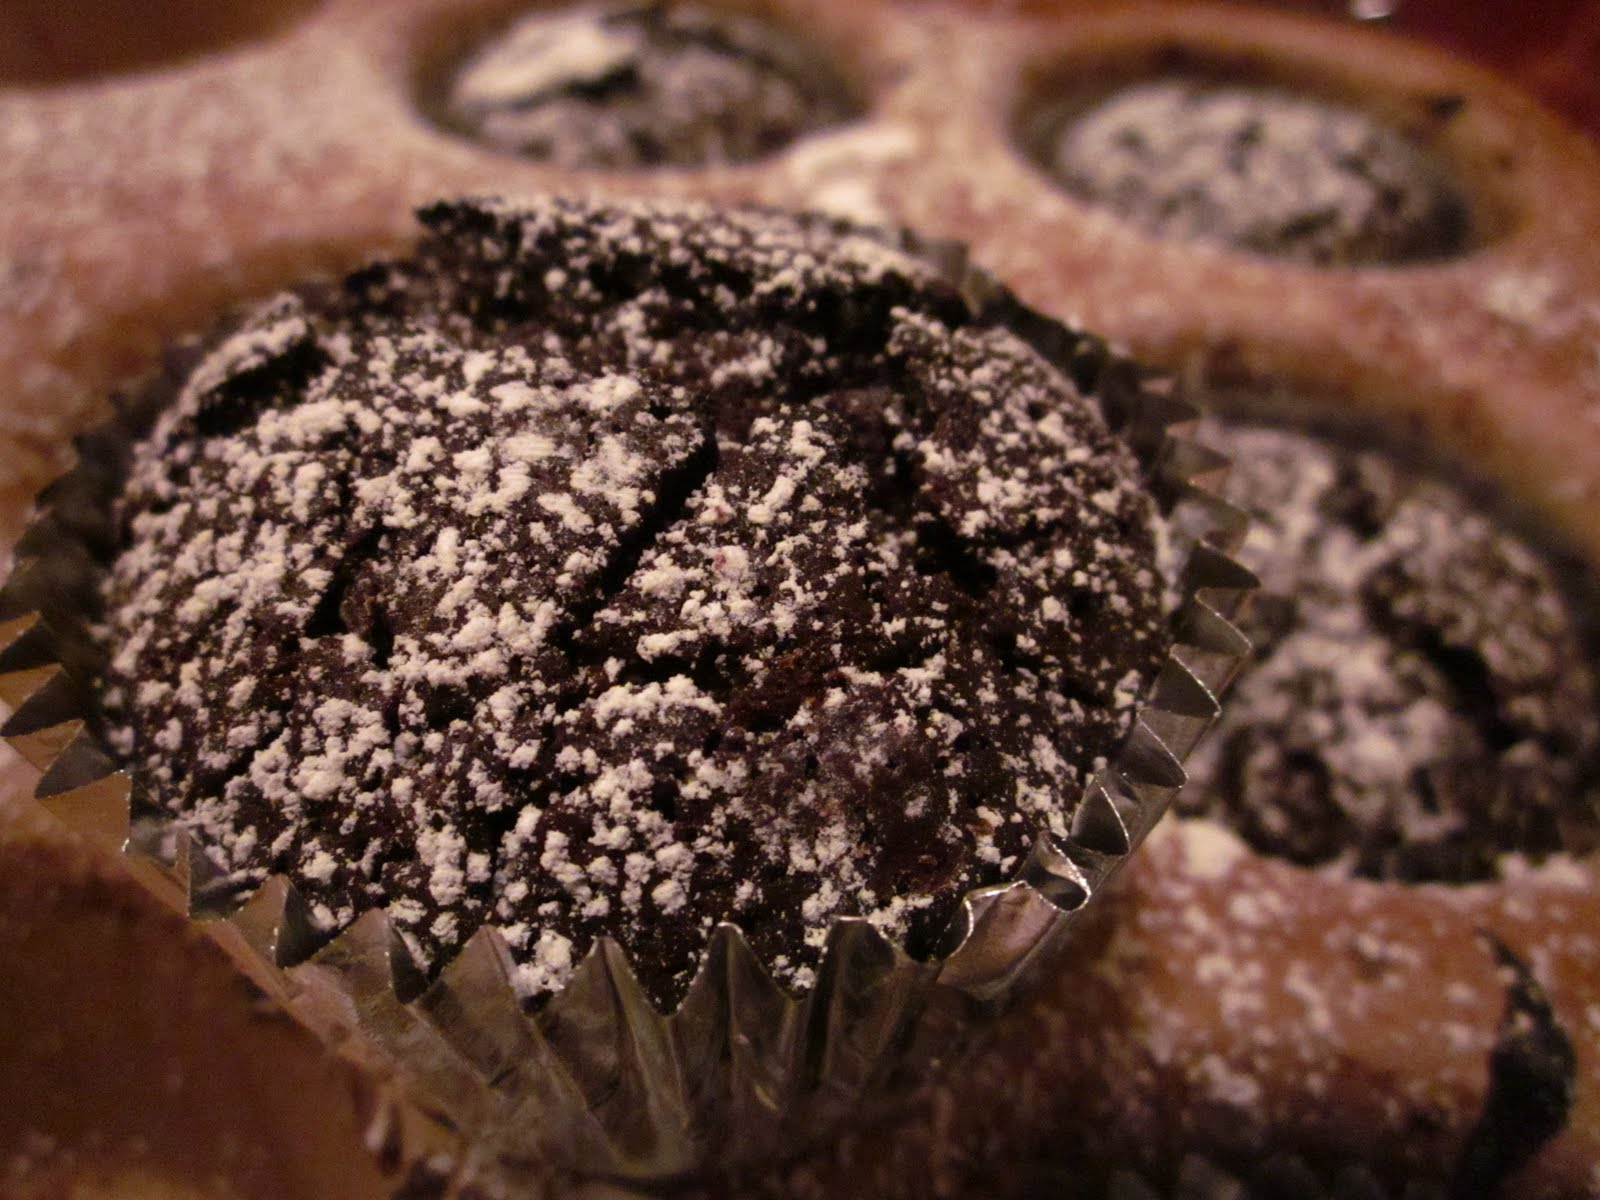 ... class who are gluten-free and nut-free: flourless chocolate cupcakes